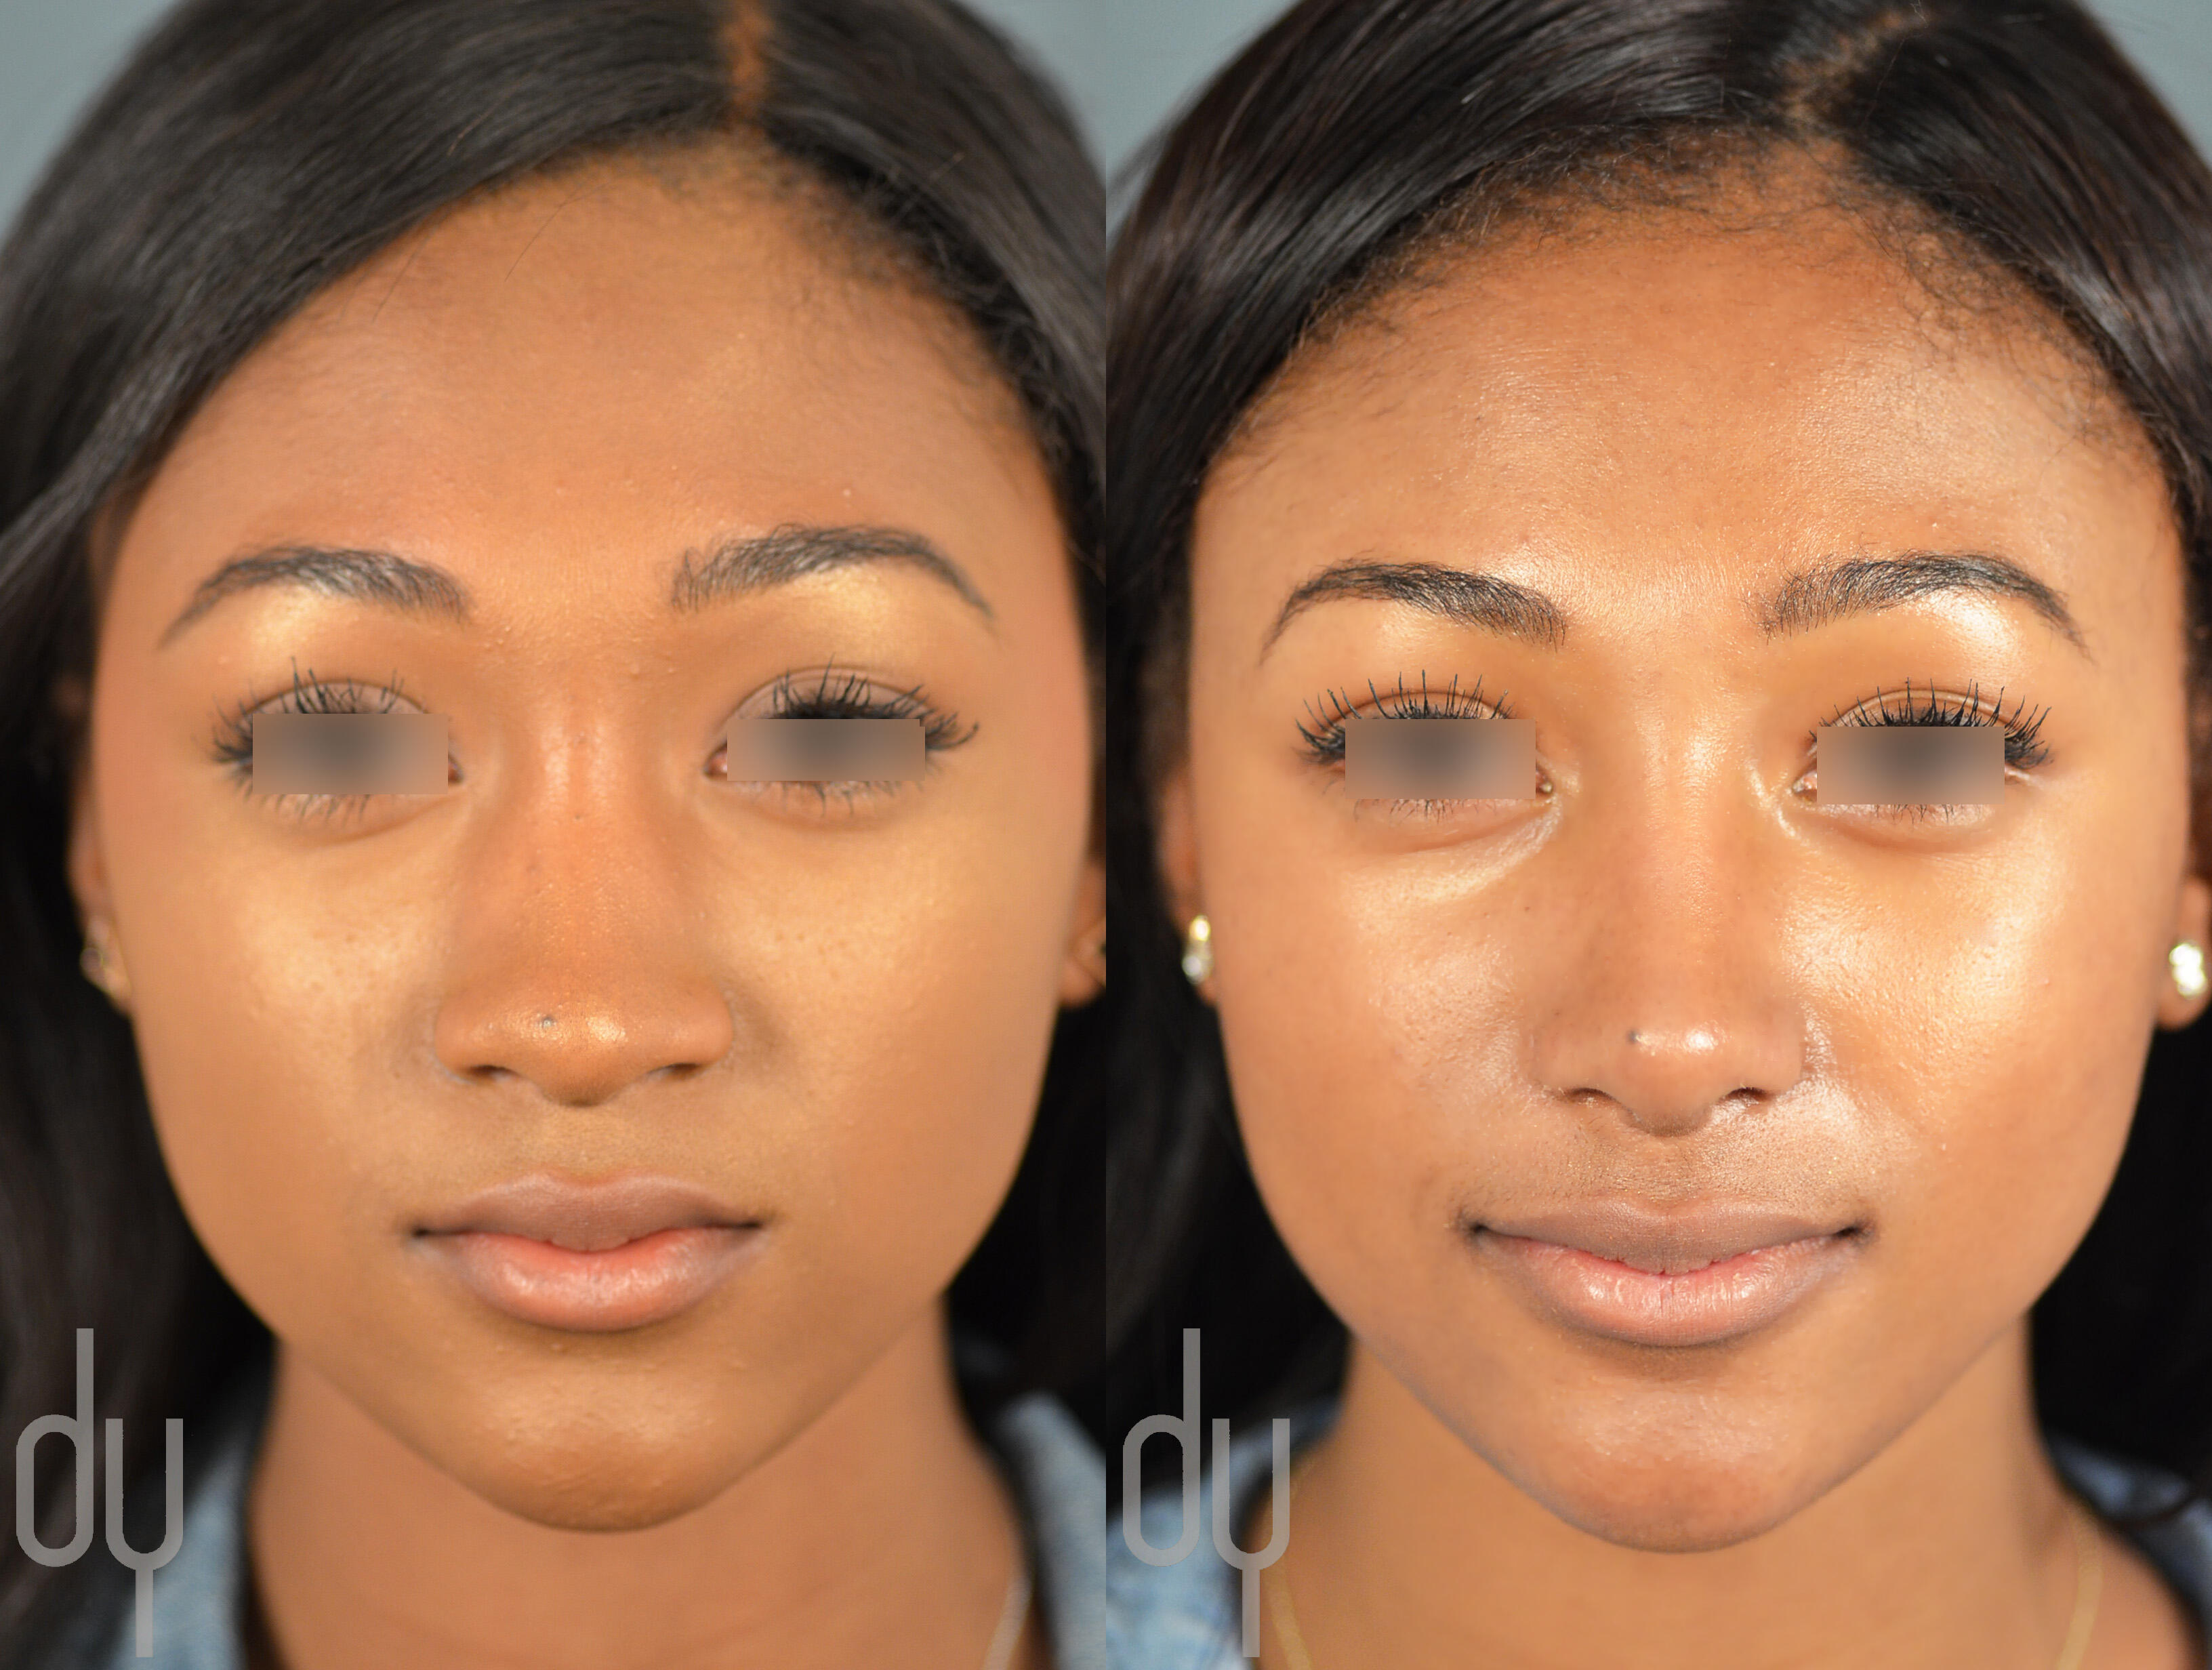 American board facial plastic surgery